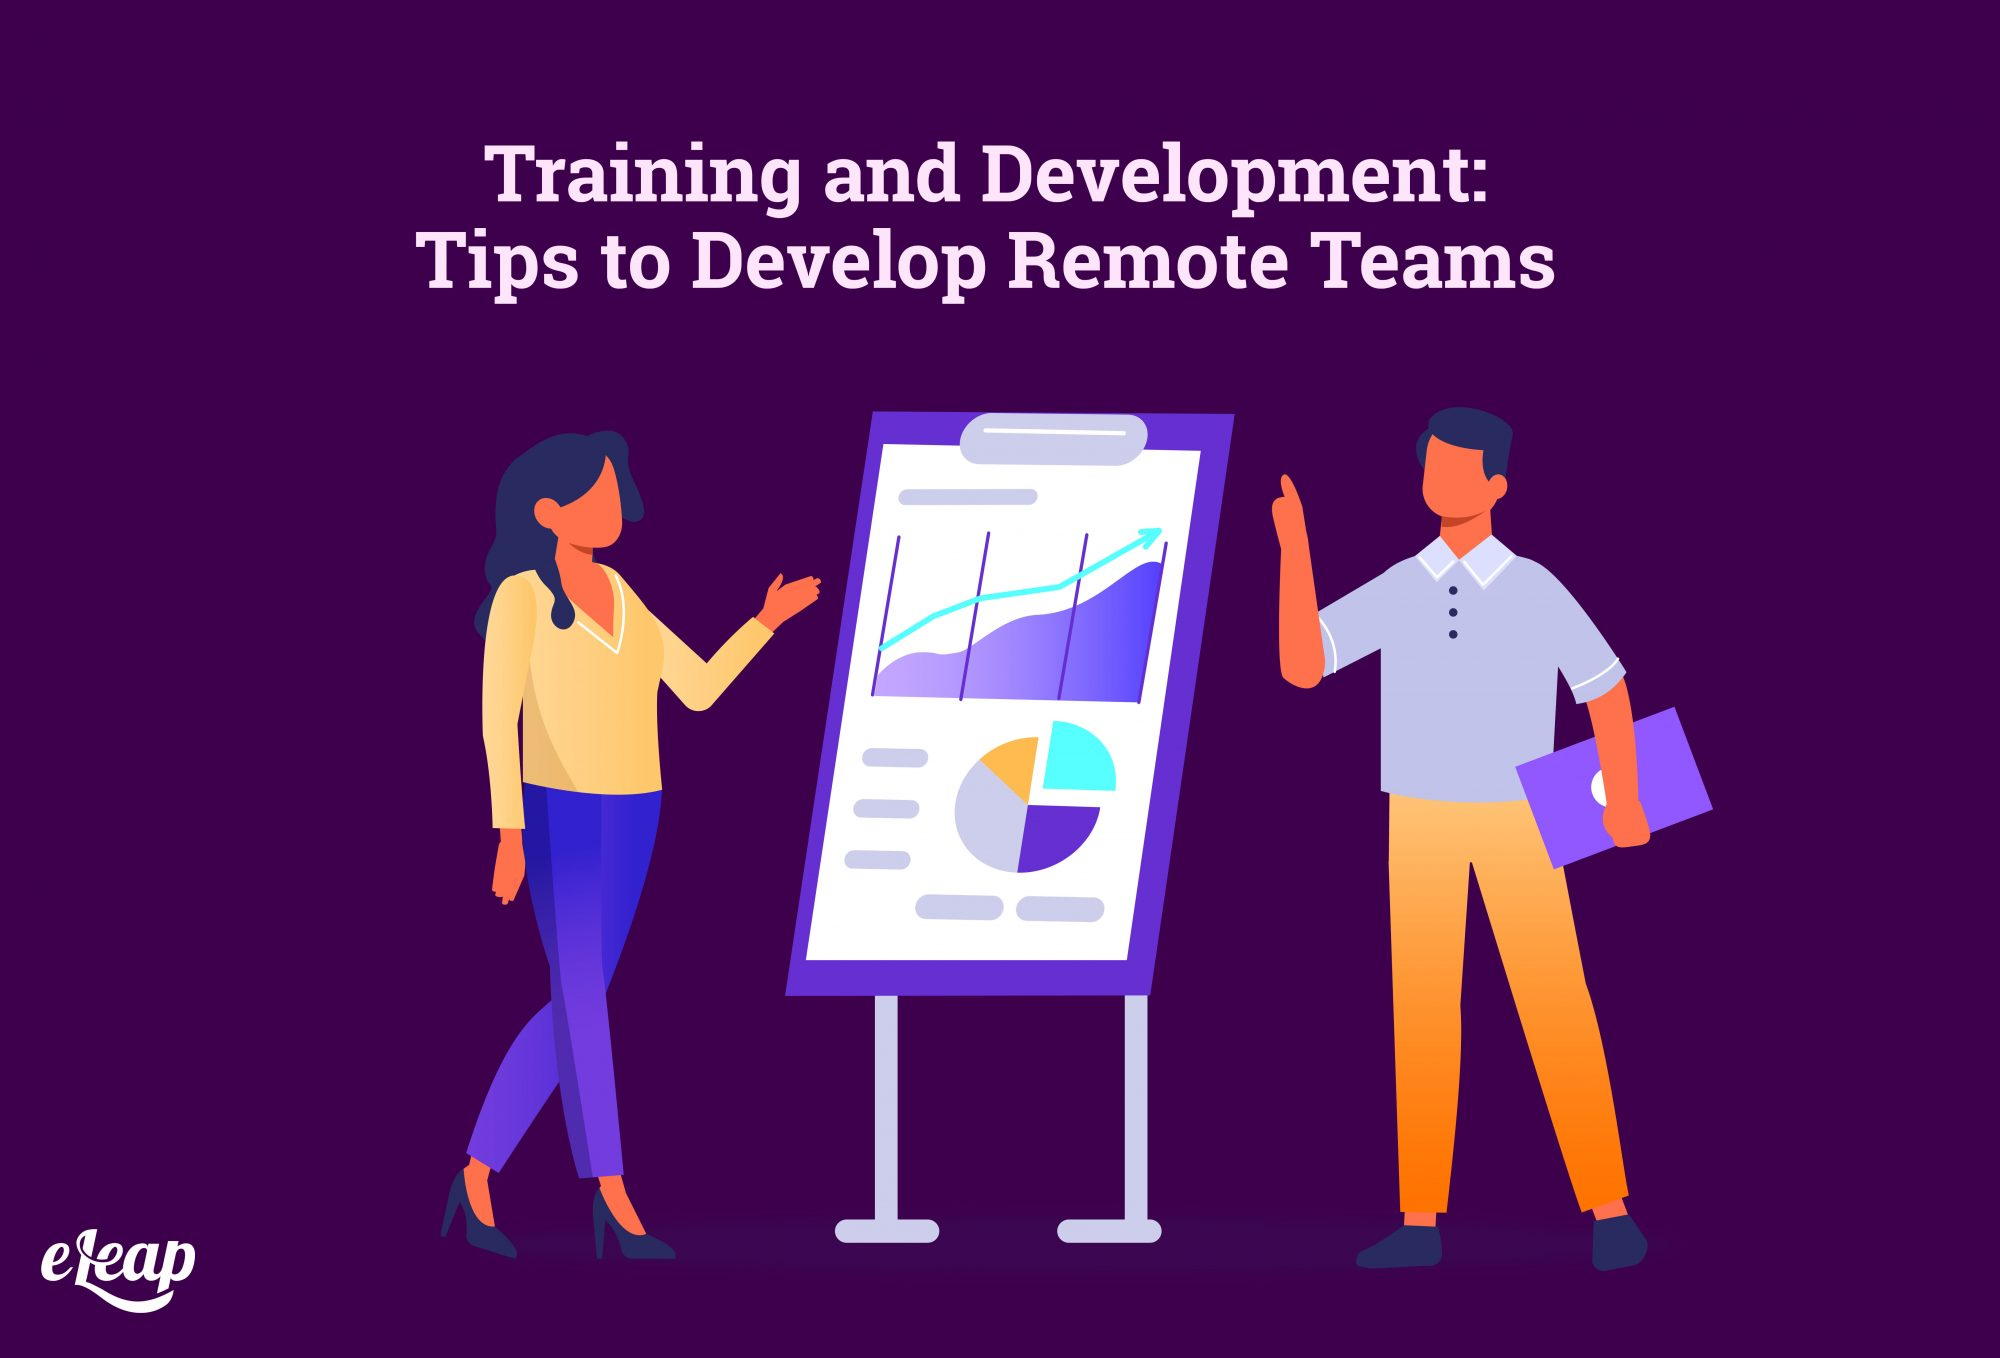 Training and Development: Tips to Develop Remote Teams